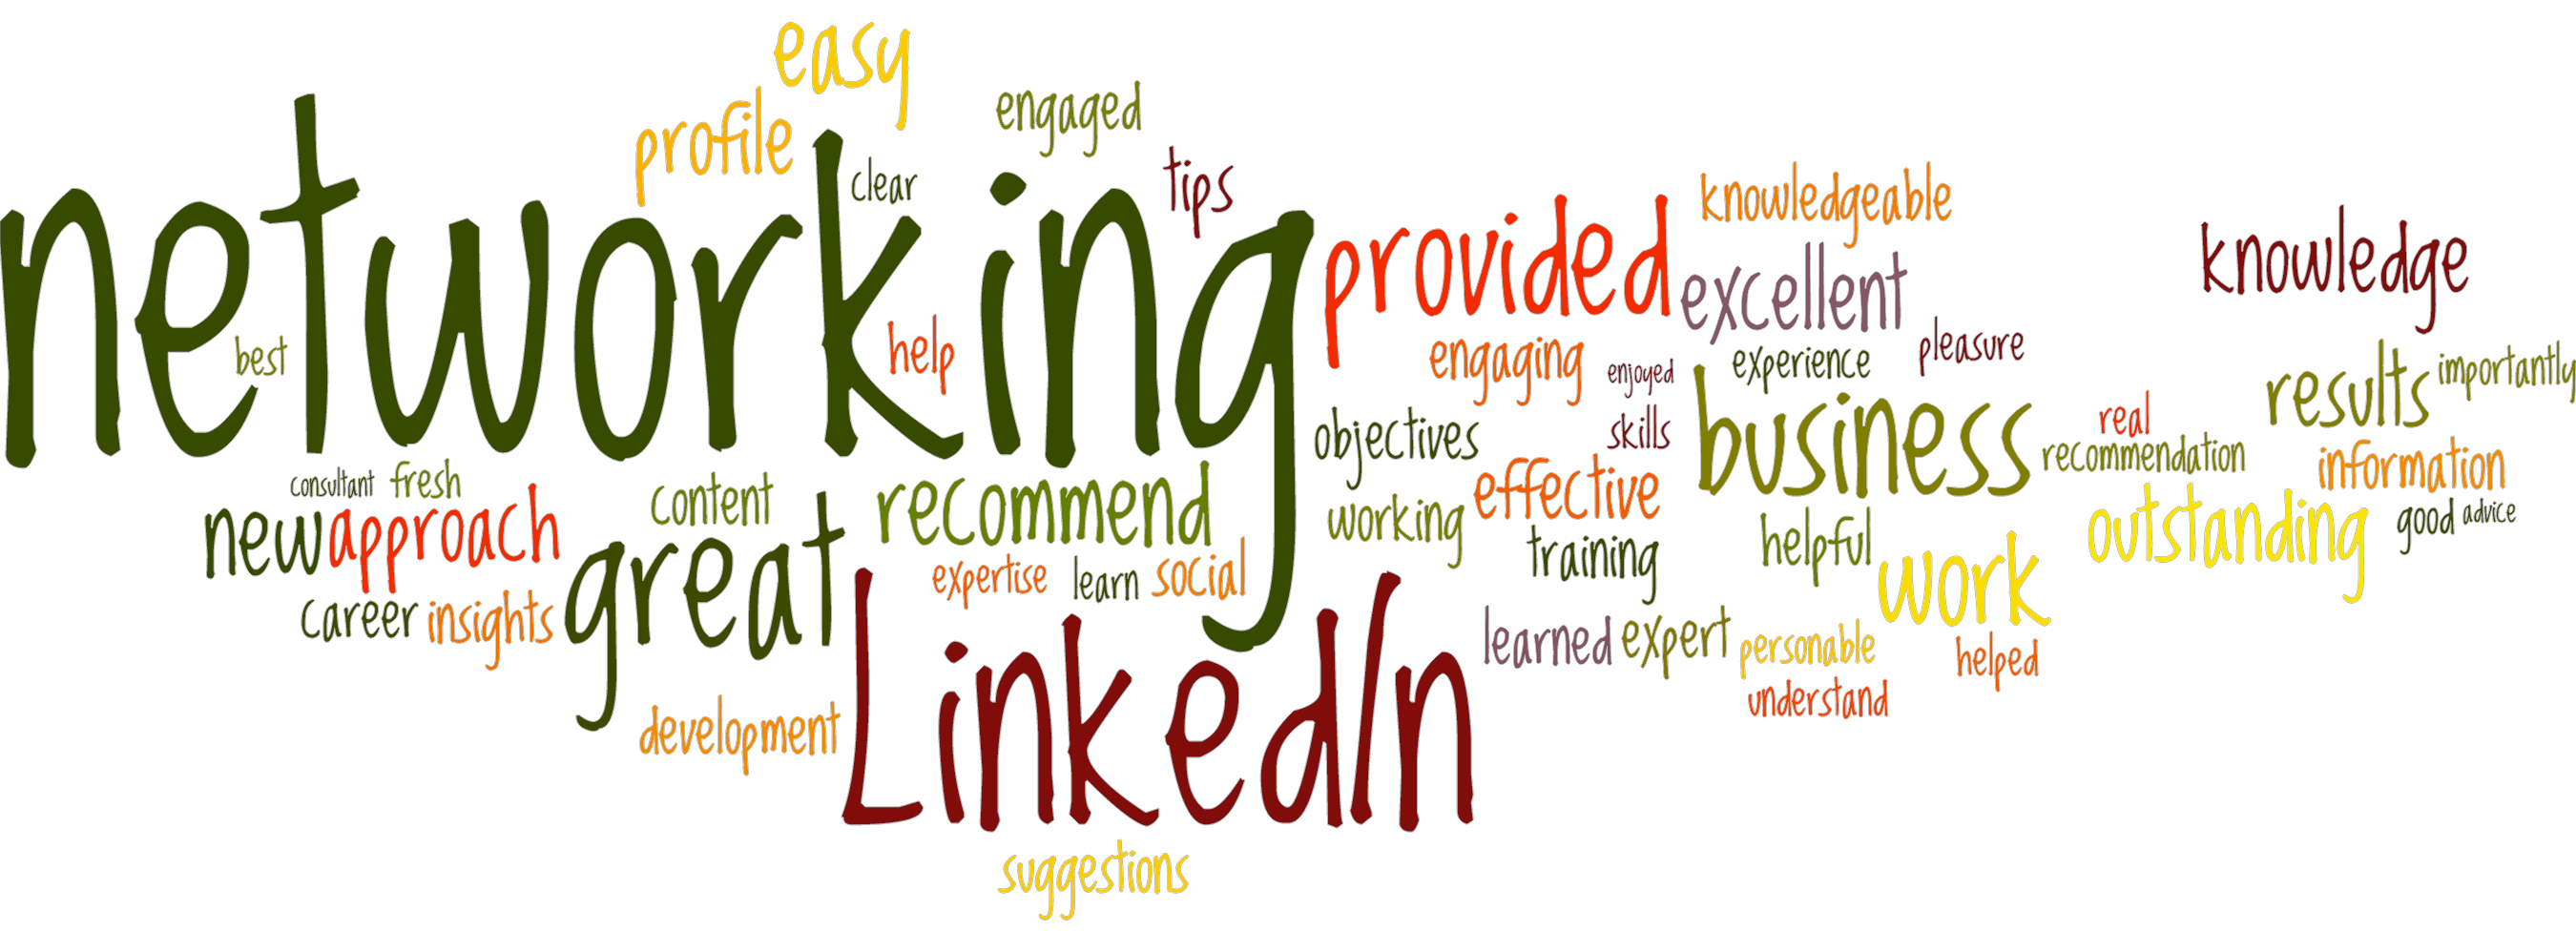 Wordle cloud of Sandy Jones-Kaminski's LinkedIn recommendations